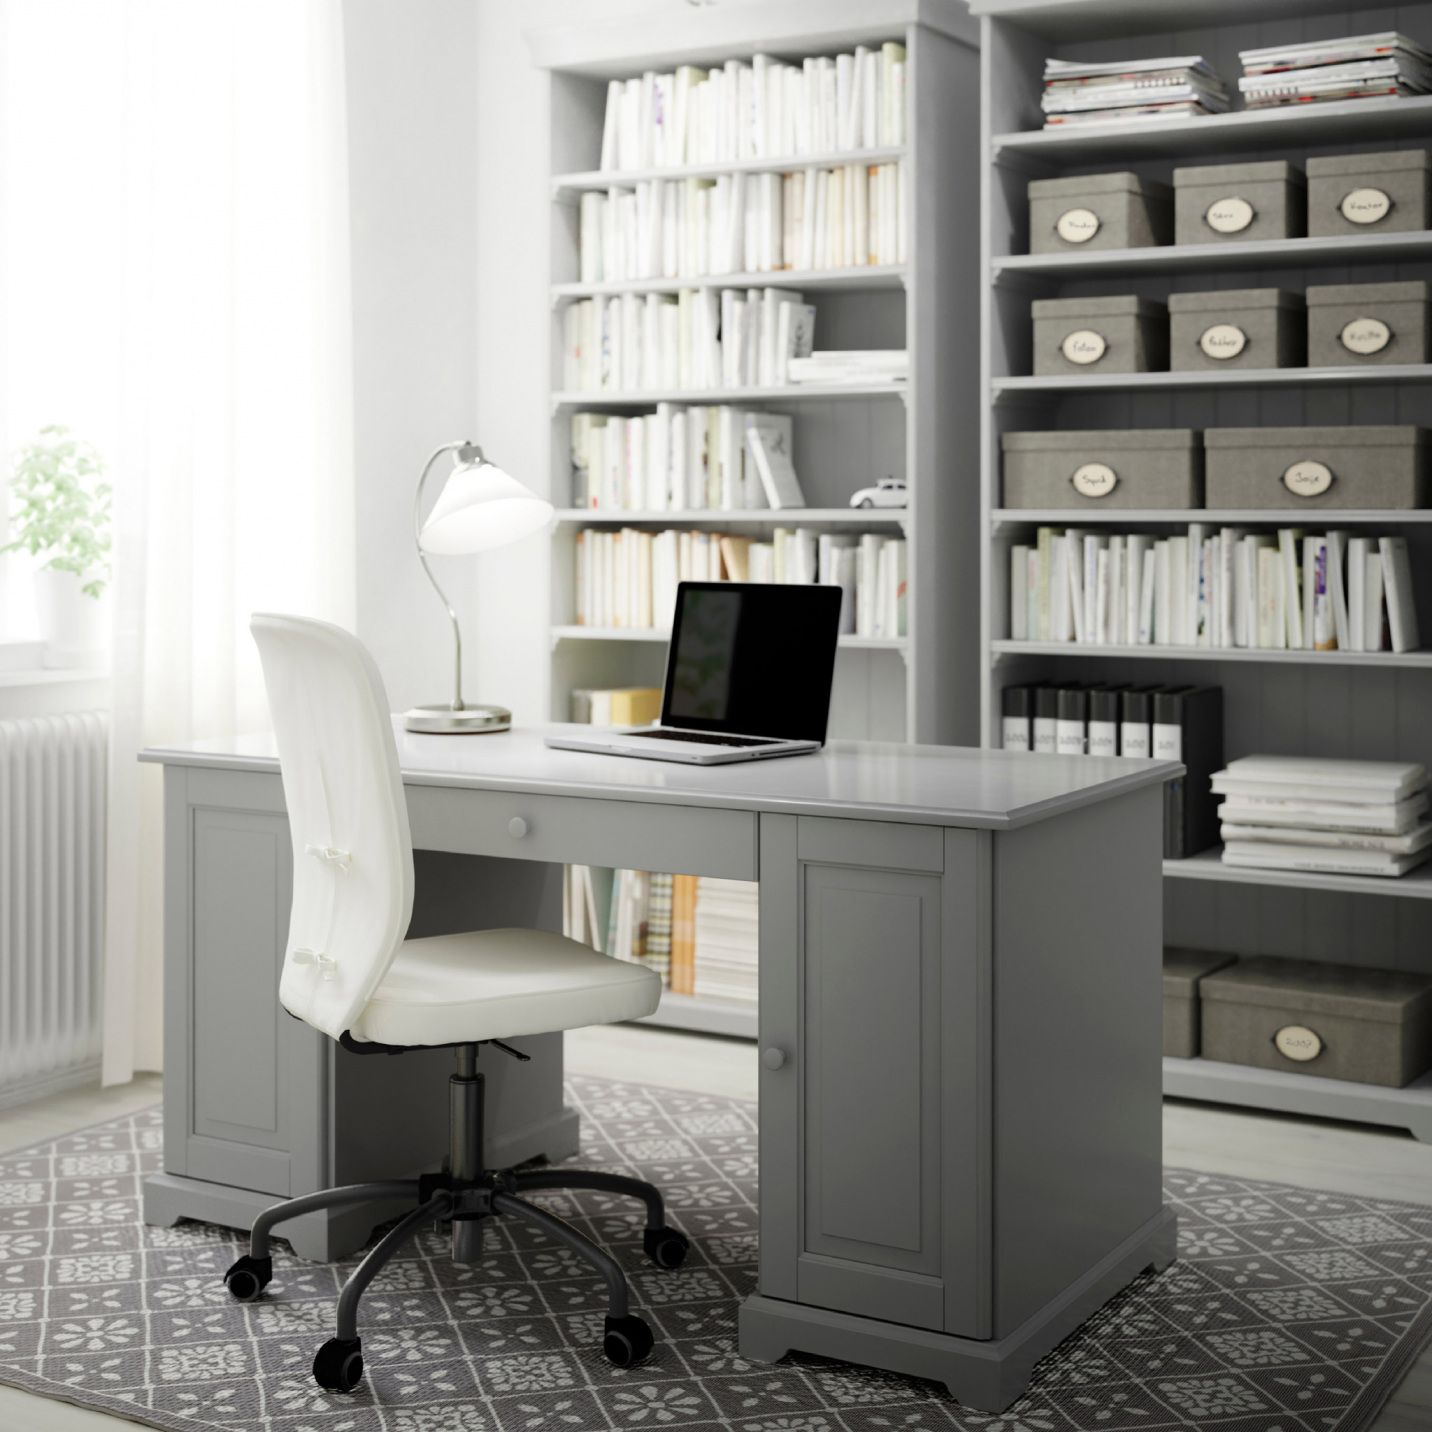 ikea home office furniture uk. Ikea Office Desks Uk - Real Wood Home Furniture Check More At Http:/ Ikea Home Office Furniture Uk F